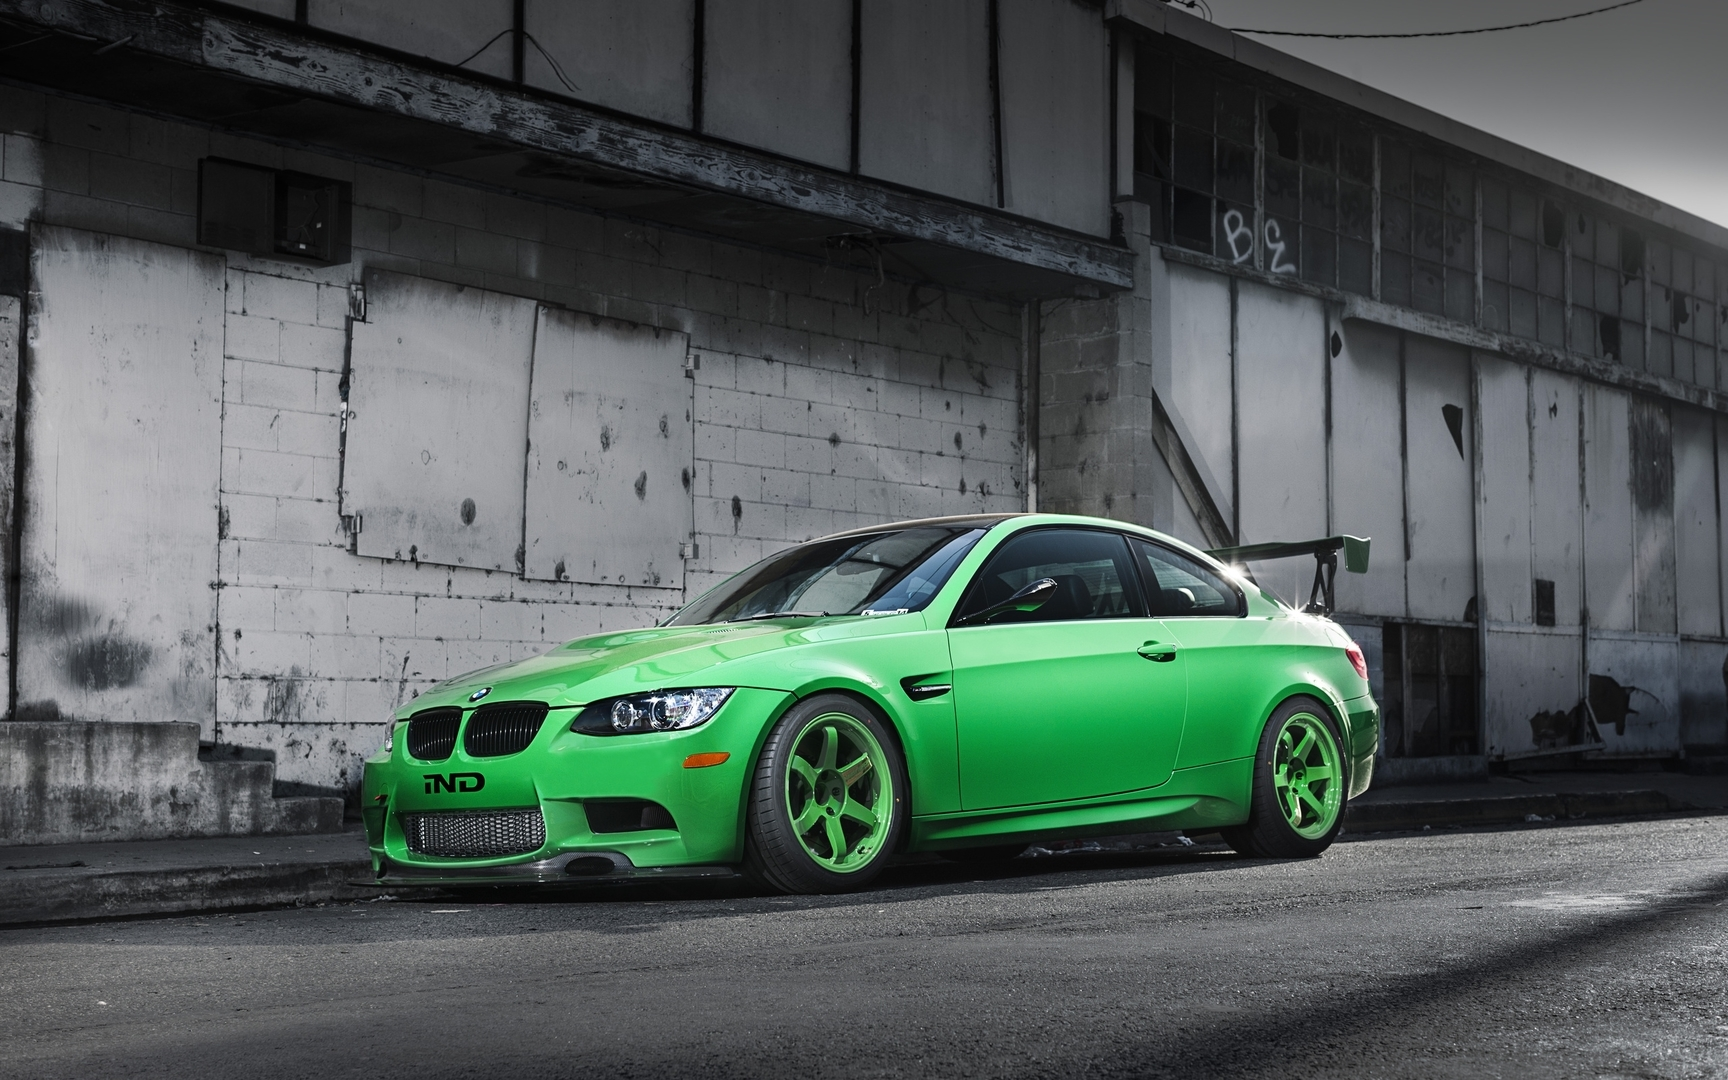 bmw-m-green-1920x1080-HD-wallpaper-wp3603592